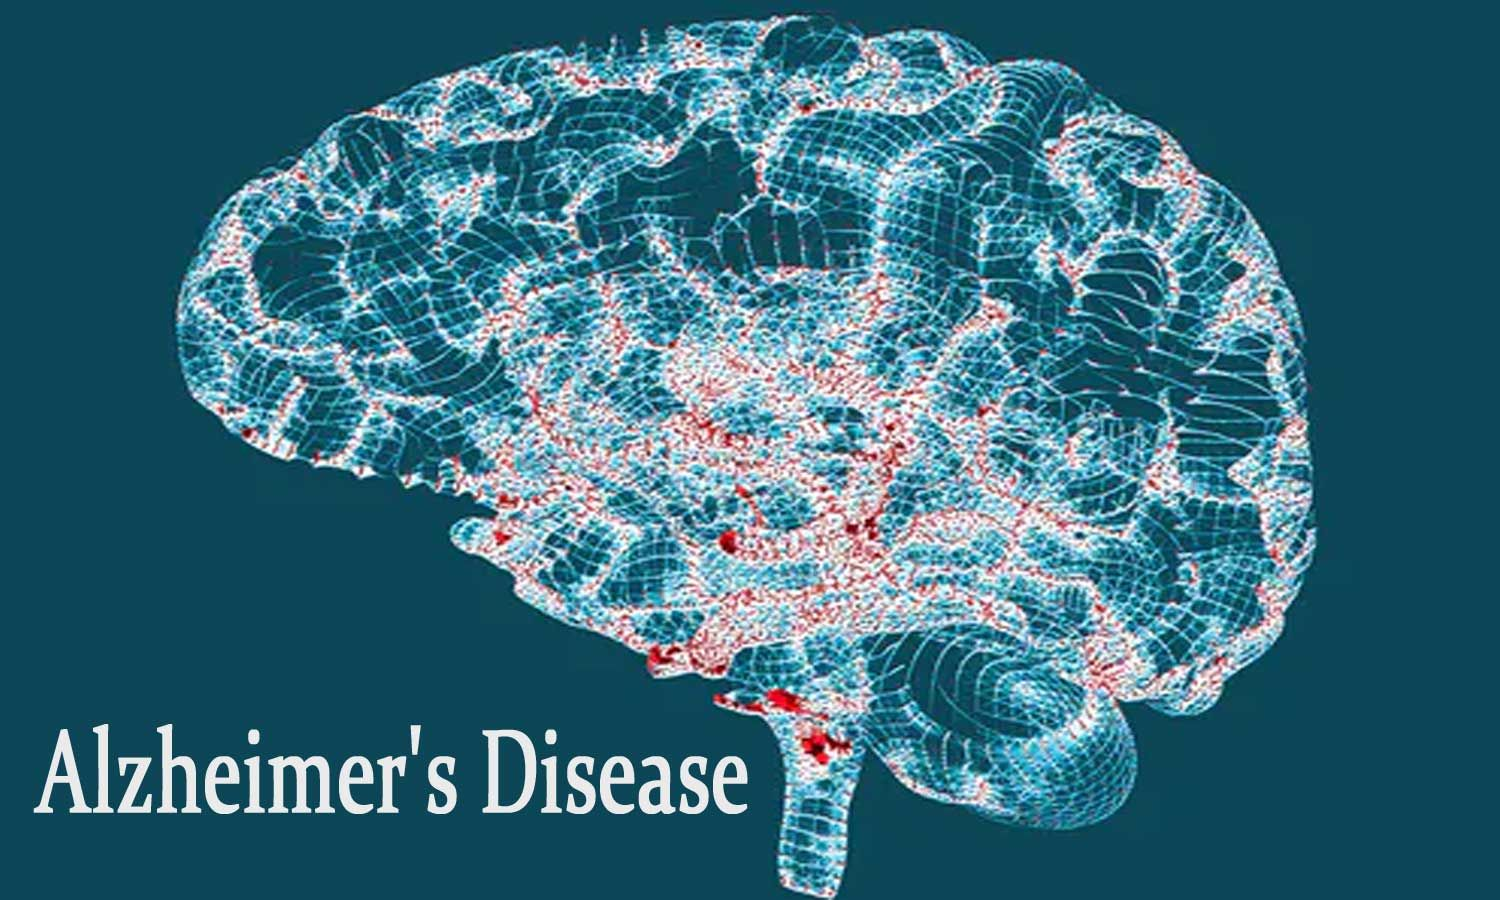 Researchers develop less invasive, cost-effective blood test to detect deposits of Alzheimer proteins in brain